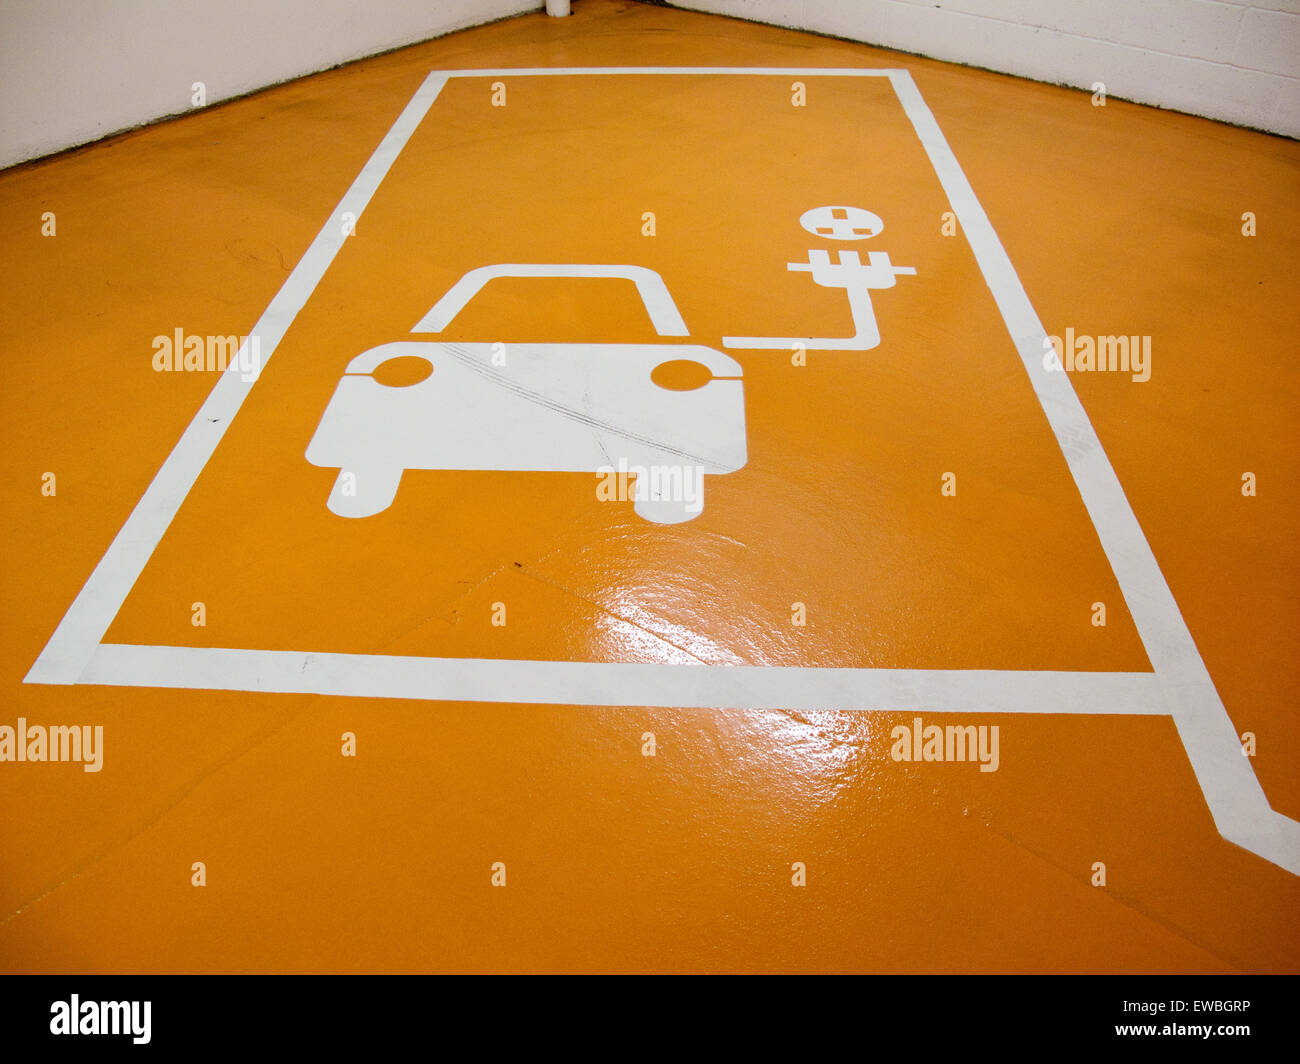 Car parking space for electric vehicles - Stock Image